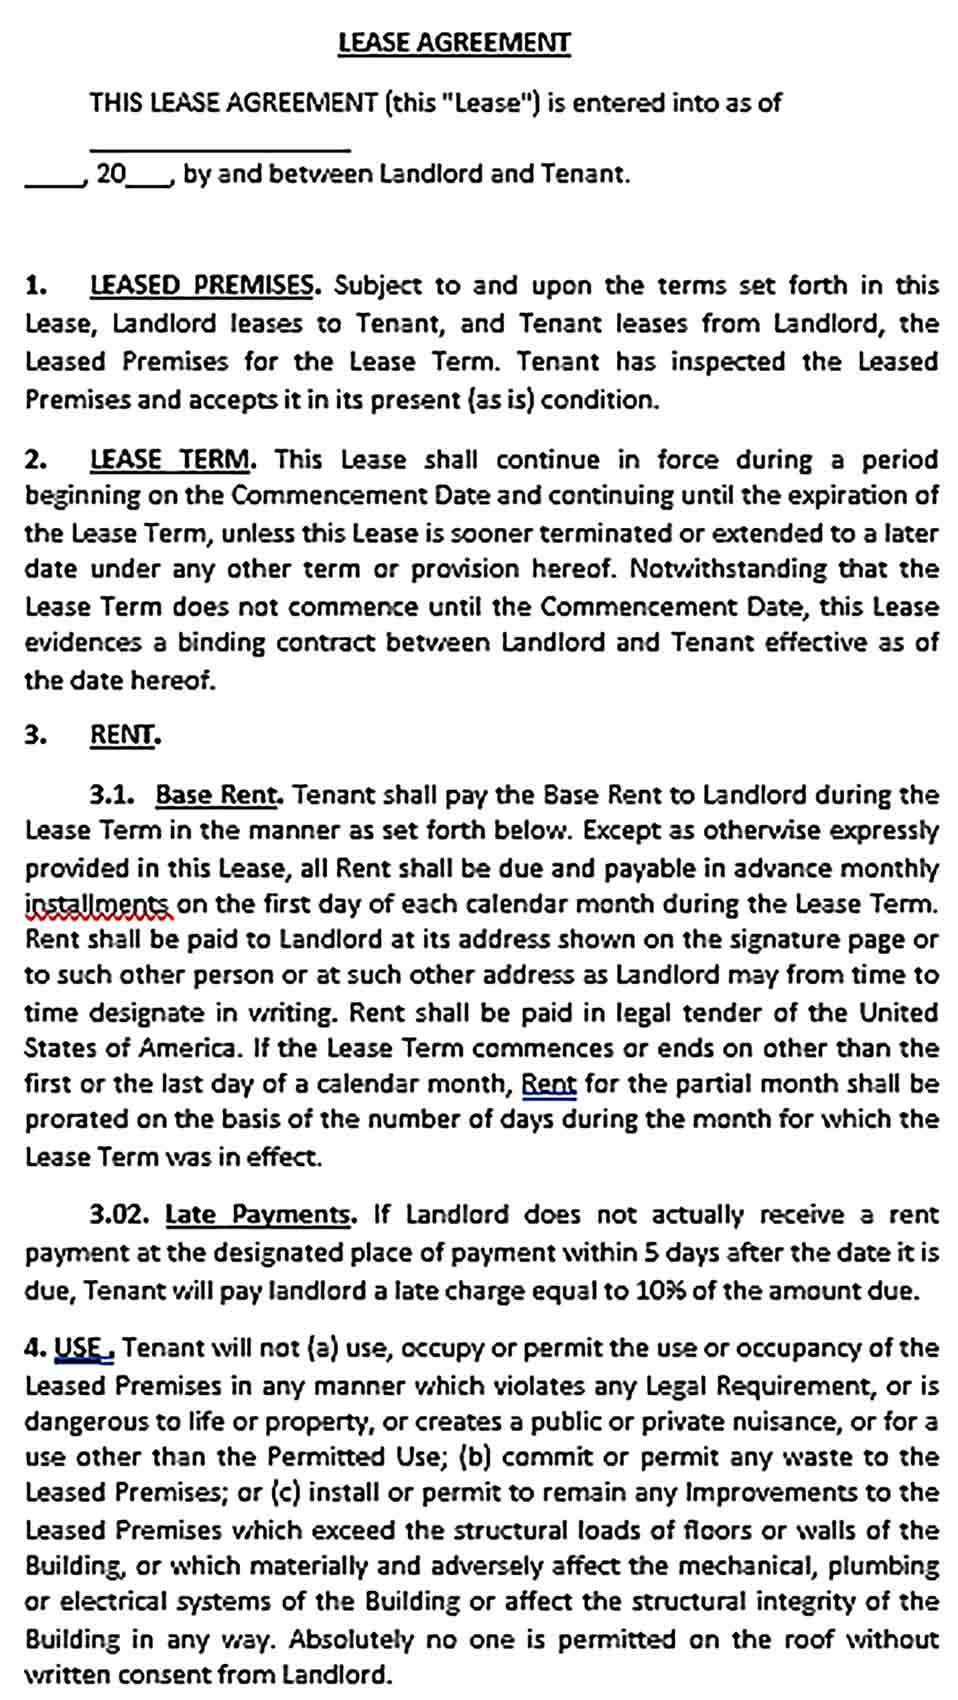 Sample Commercial Tenant Lease Agreement